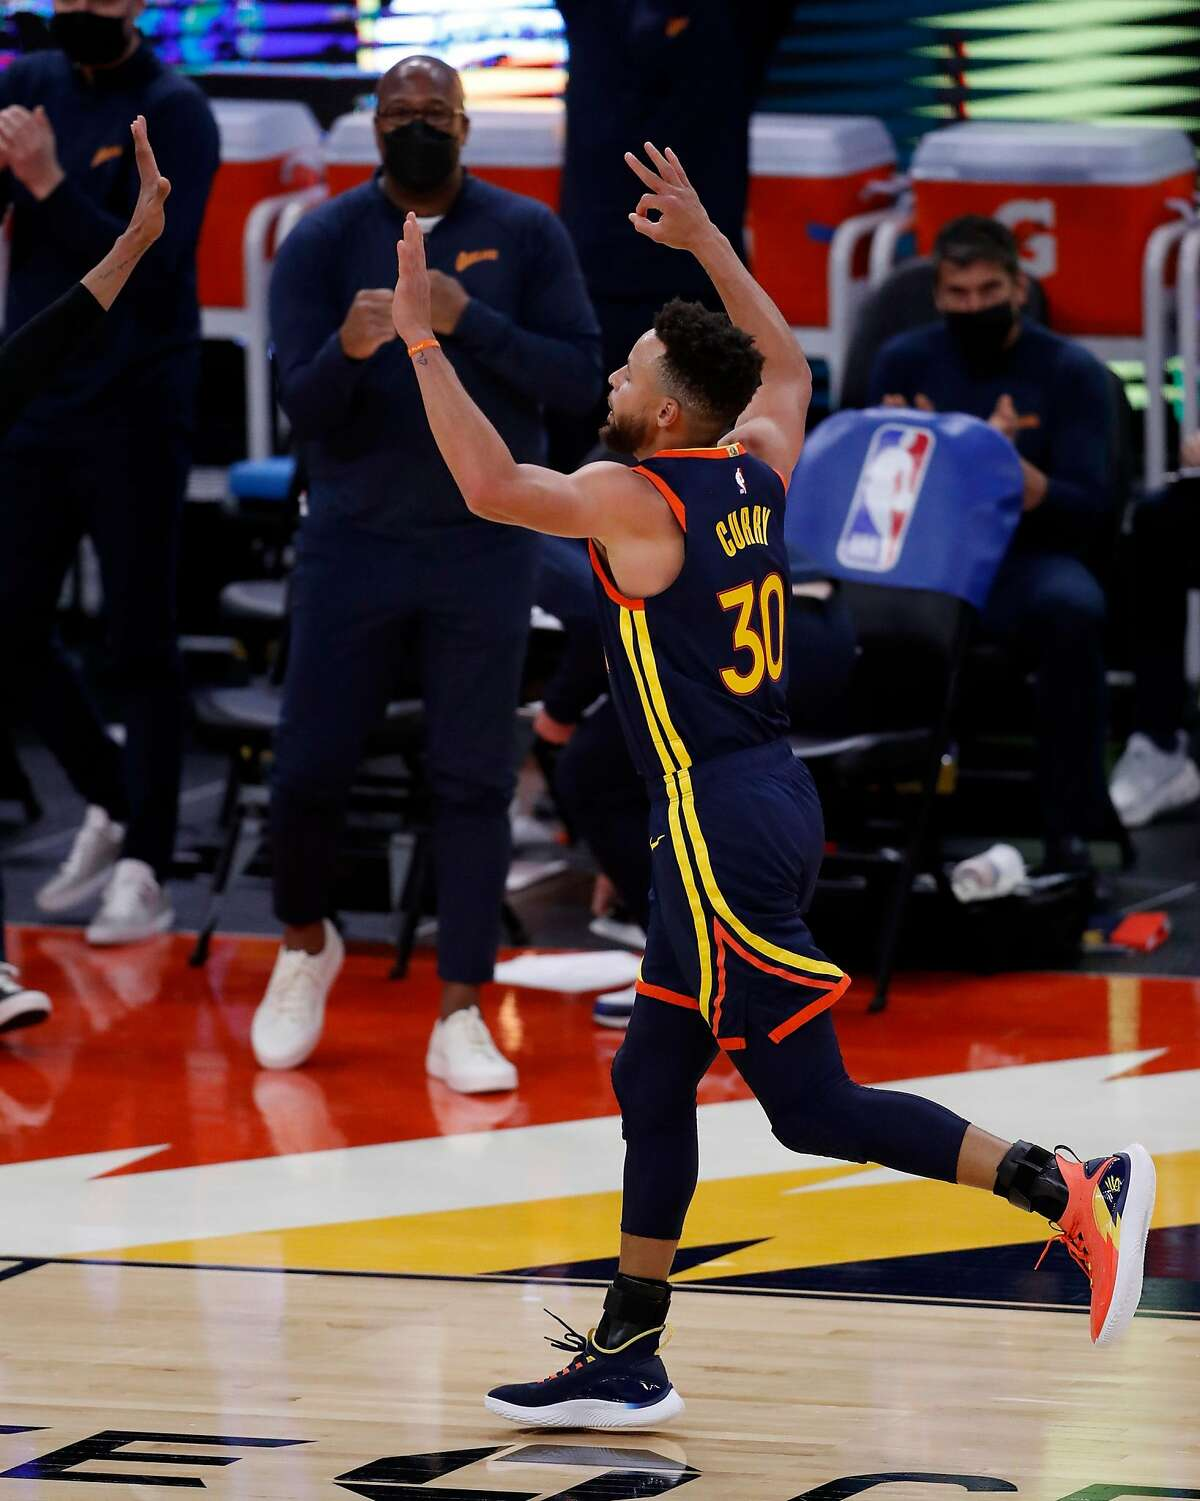 Stephen Curry had one of the worst shooting nights of his career, but got plenty of help before turning it on in overtime as the Warriors beat the Heat on Wednesday night at Chase Center.